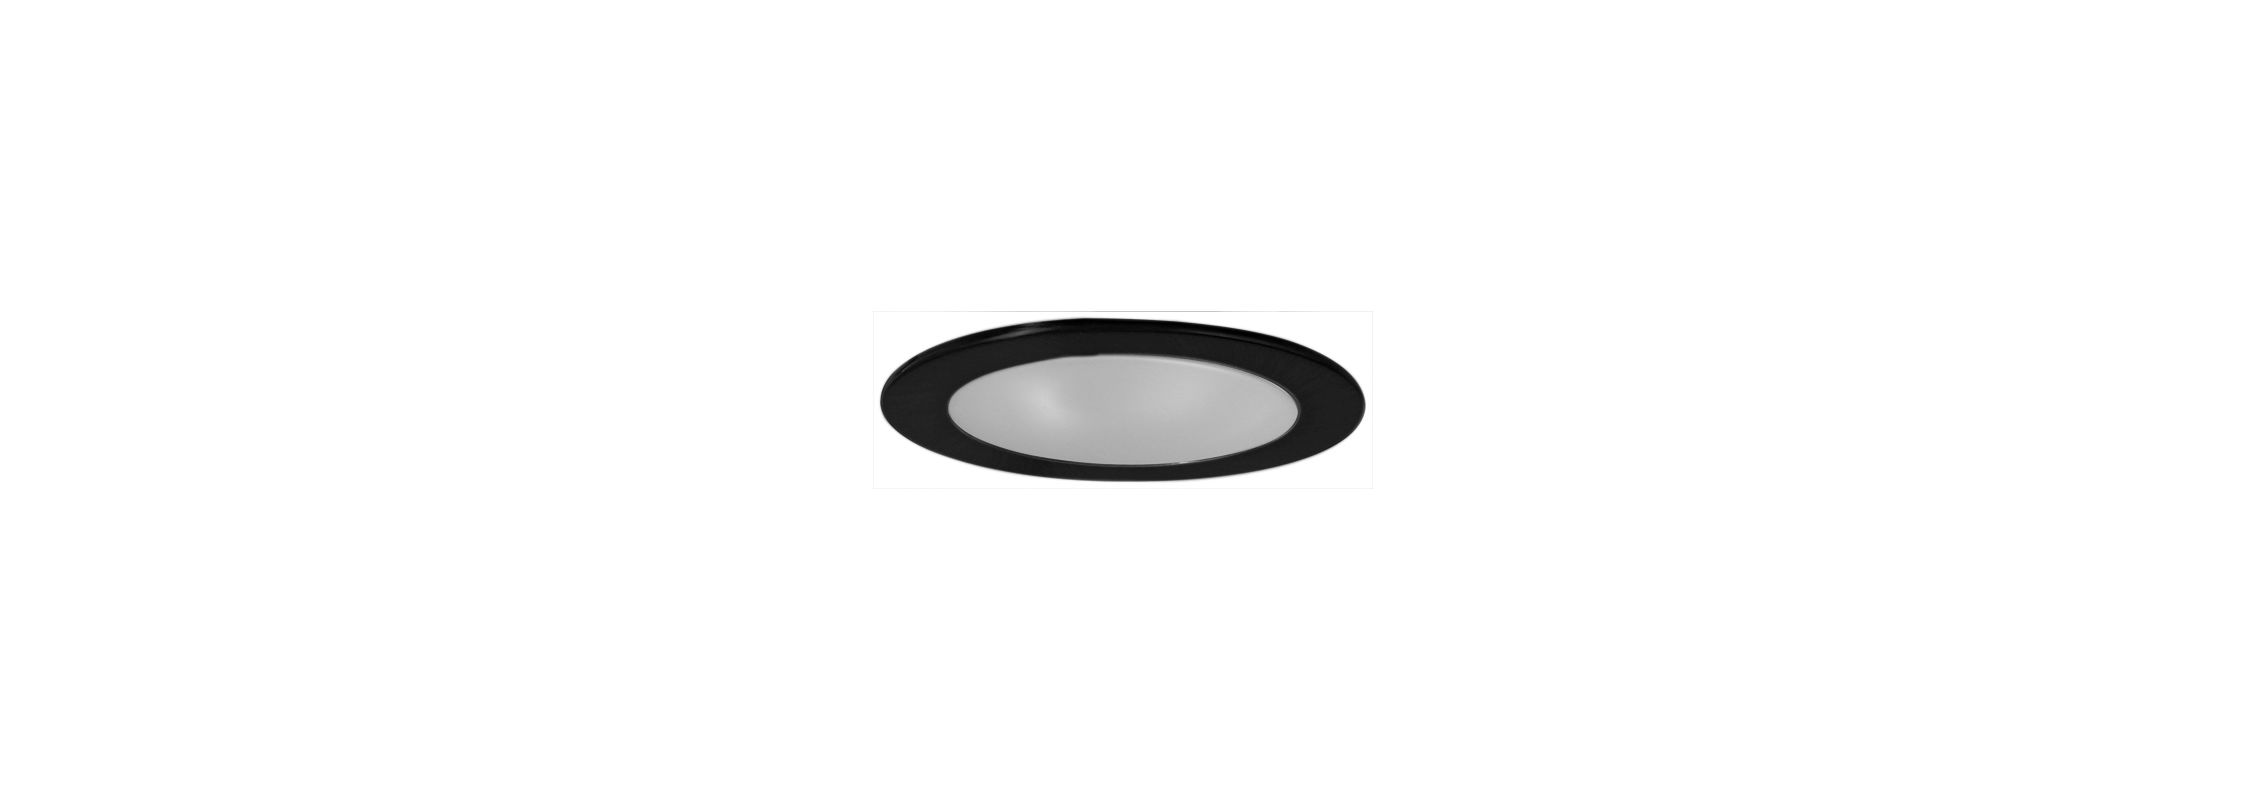 "Elco EL9112 4"" CFL Shower Trim with Frosted Lens and Reflector Black"